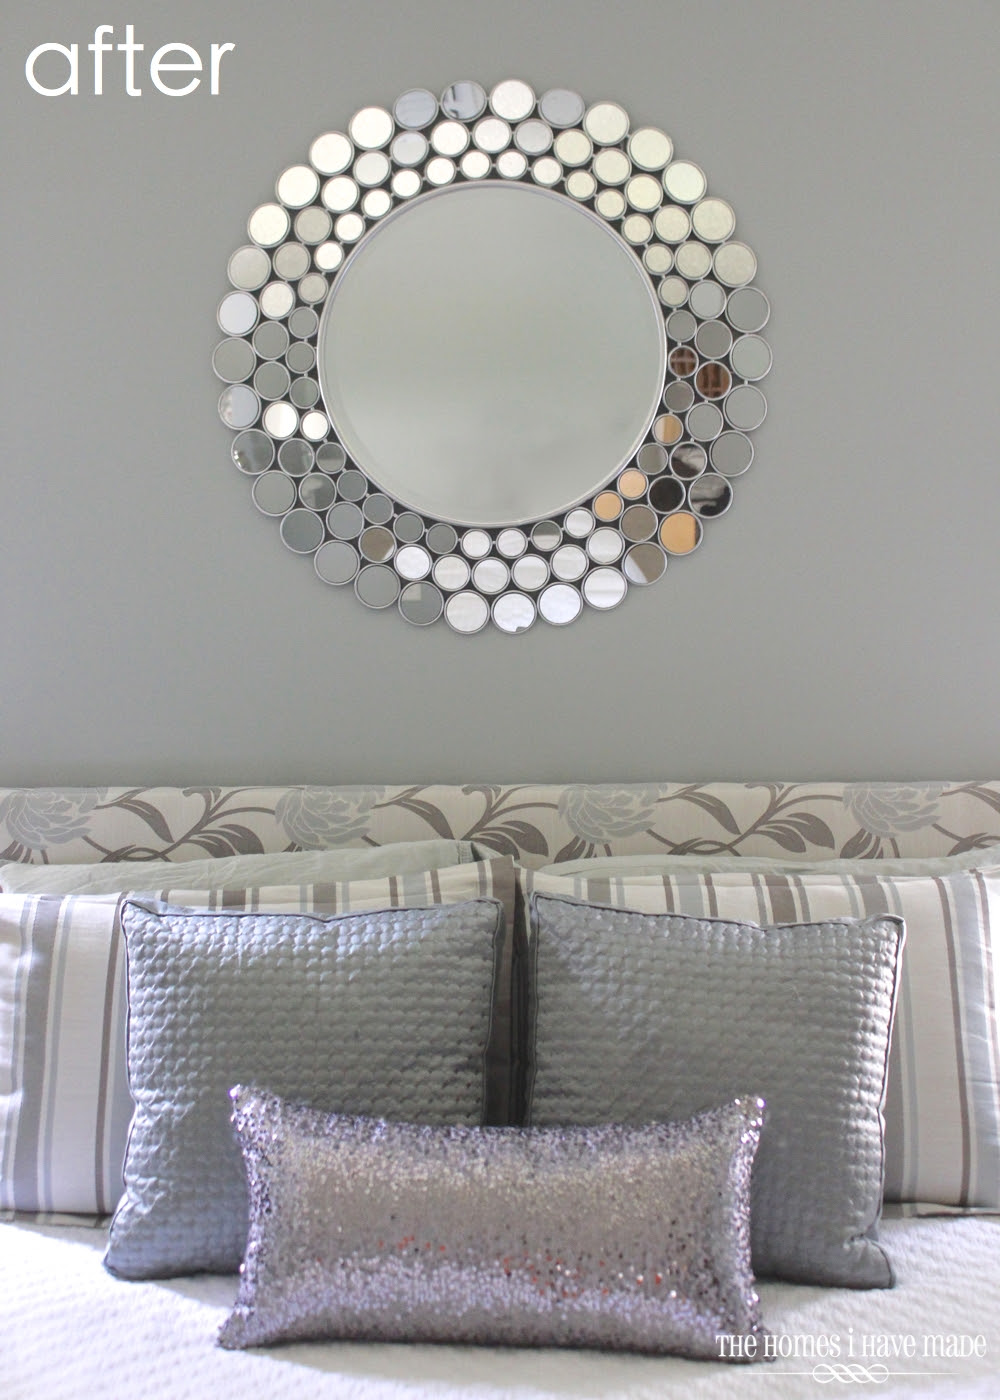 How To Spray Paint A Mirror The Homes I Have Made